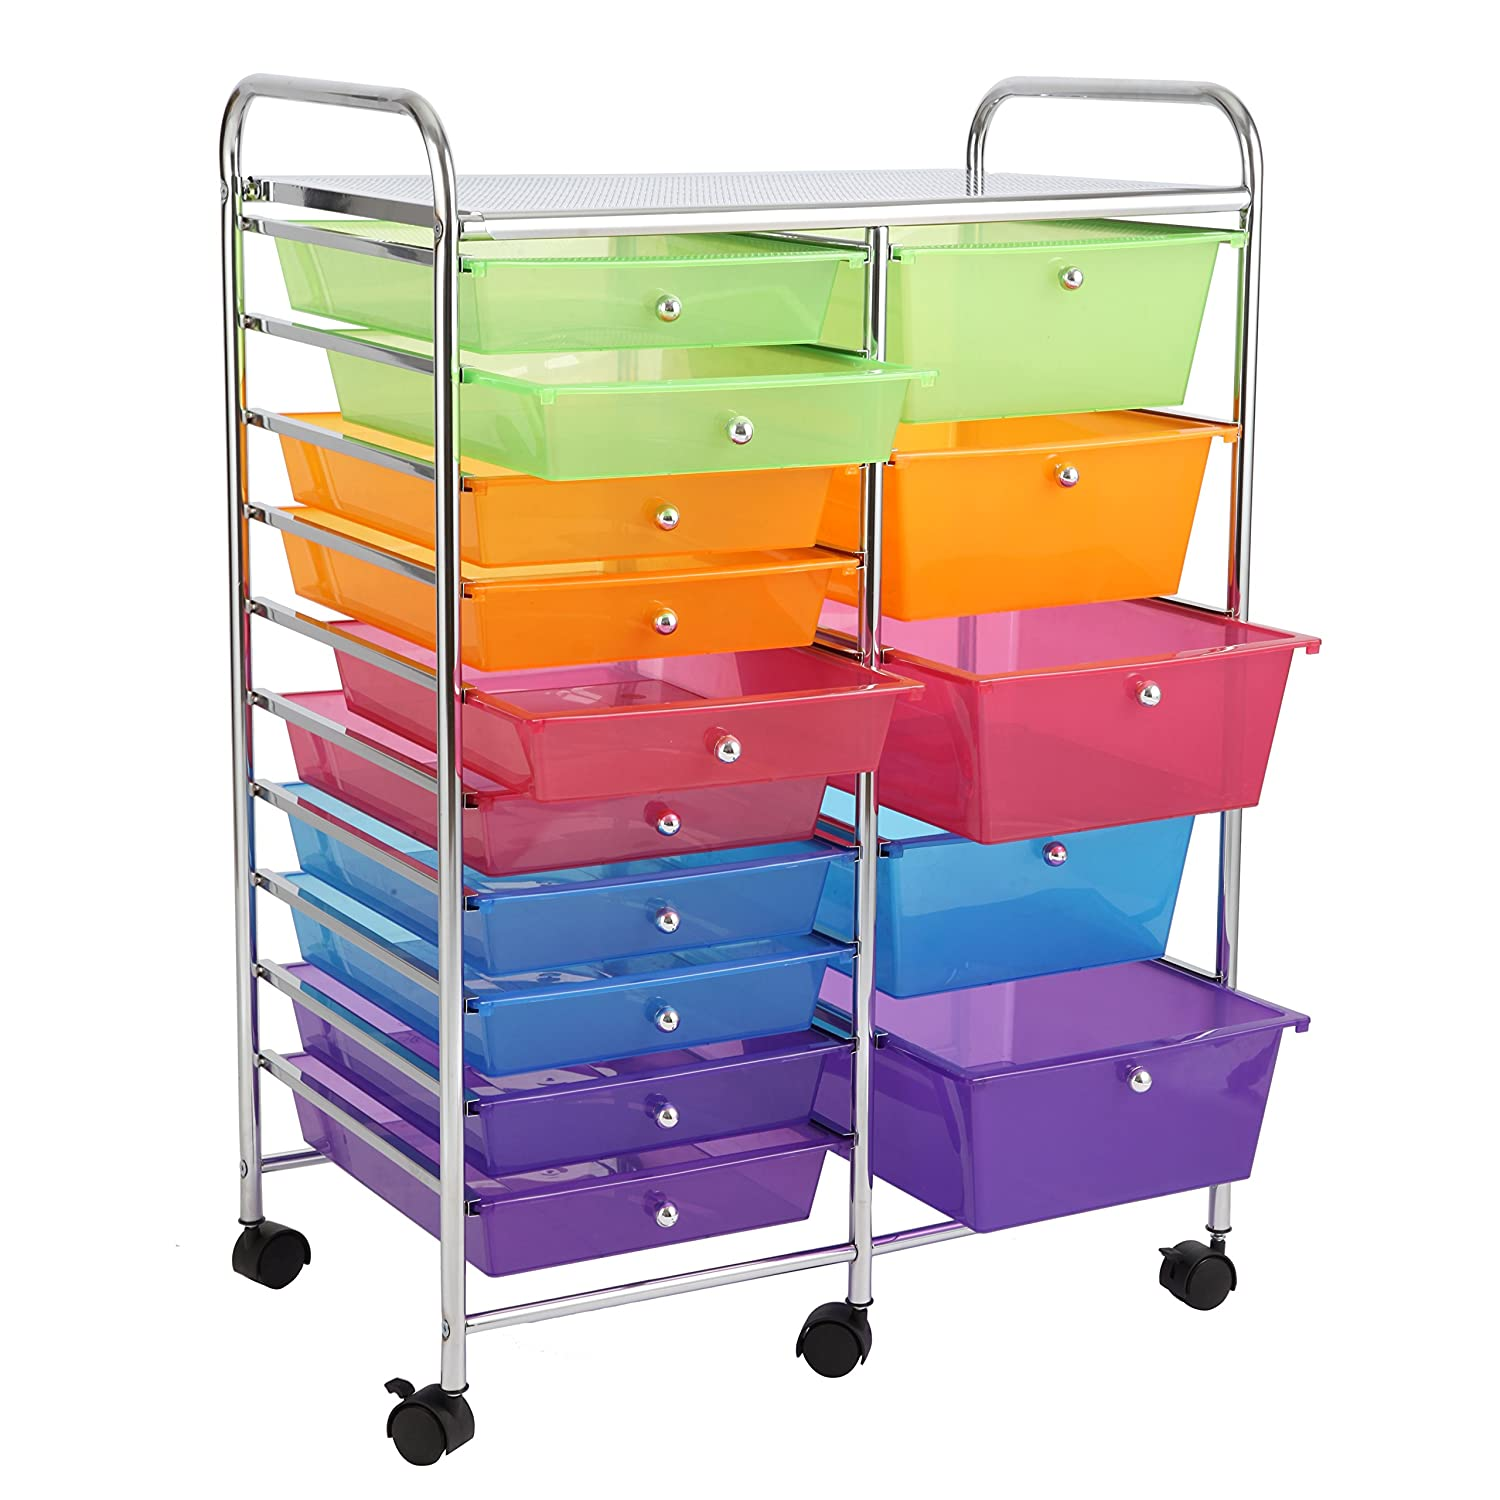 drawers drawer origami technical dim img specs cart dimensions pack products refurbished storage rack